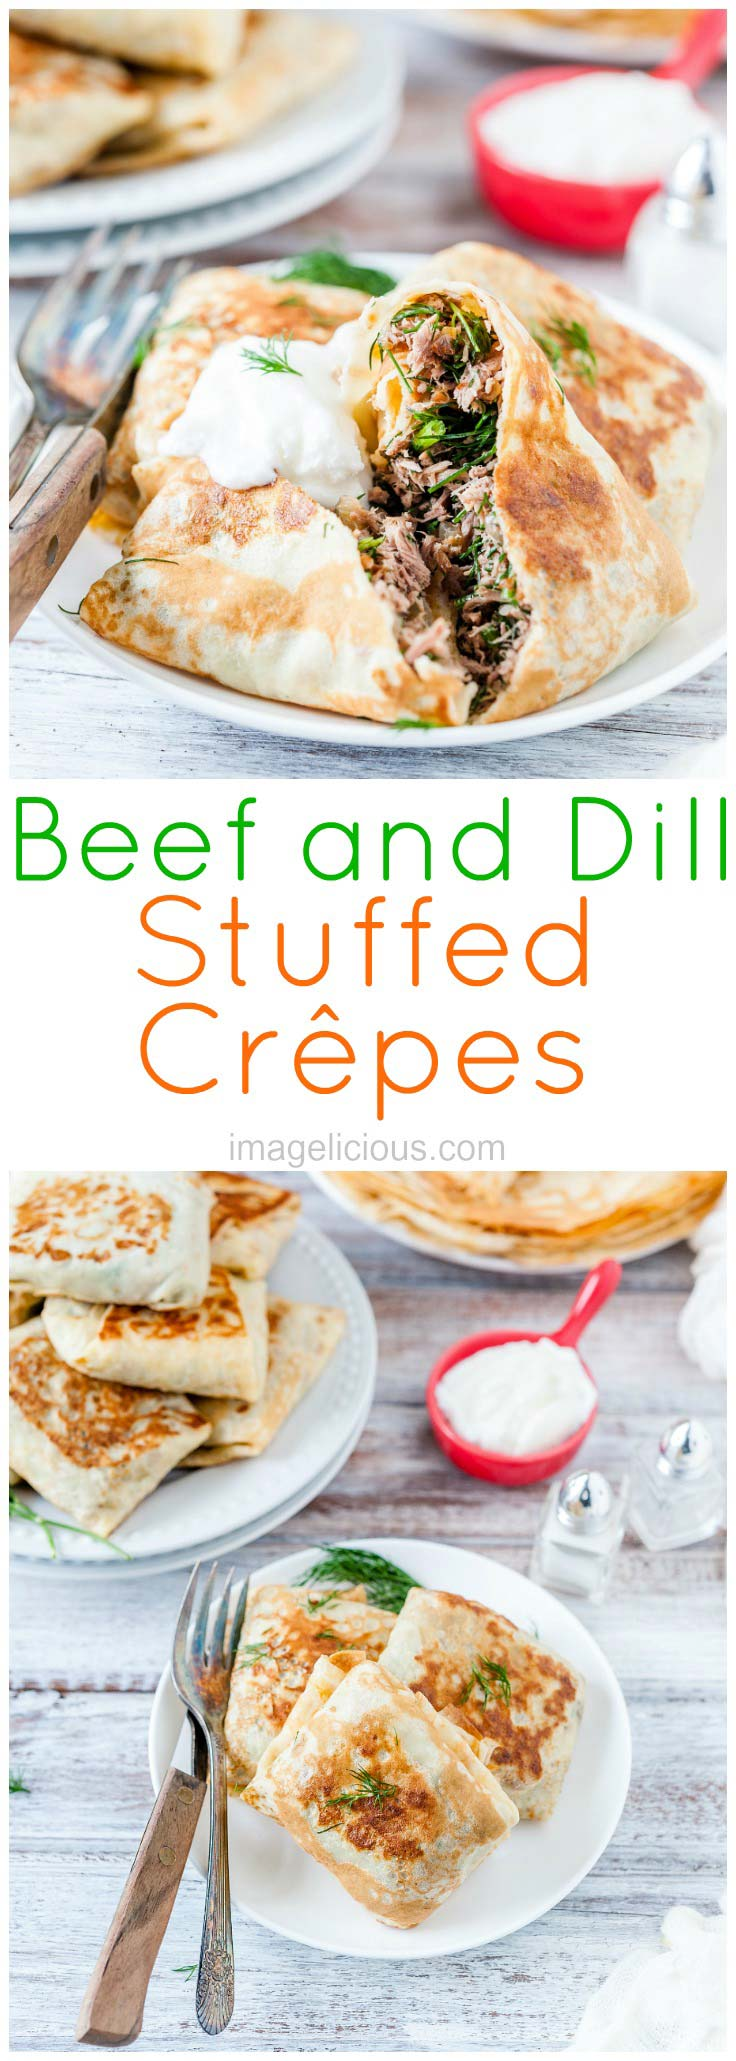 Beef and Dill Stuffed Crepes | crepes | russian | blini | blinchiki | beef | dill | herbs | dinner | lunch | global food | russian food | Imagelicious